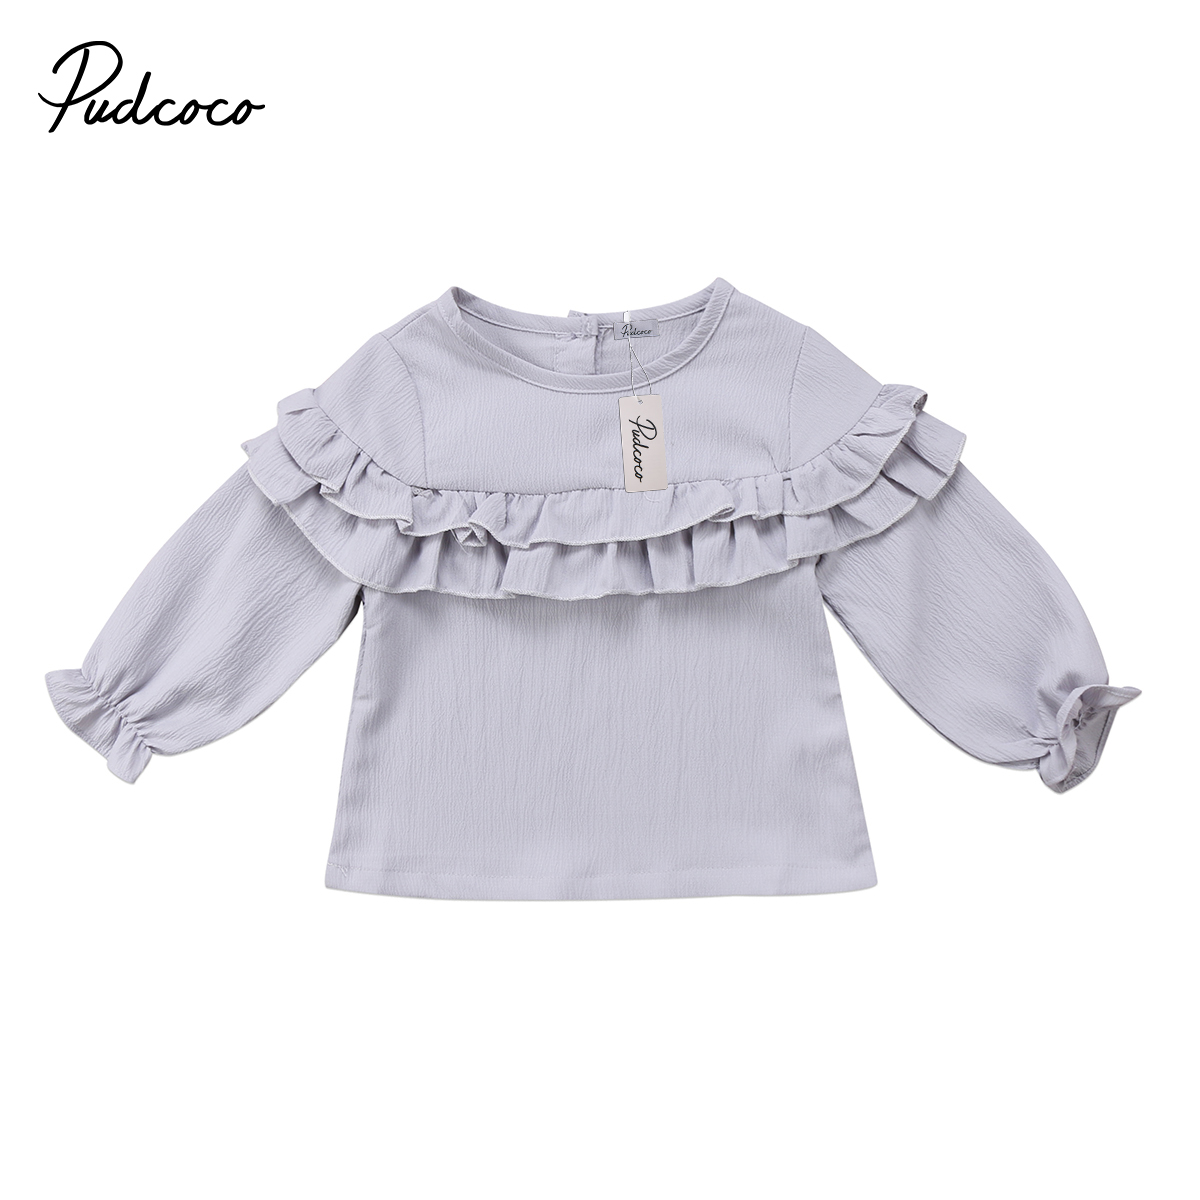 Pudcoco T-Shirt Toddler Baby-Girl Kid White Newborn Red 0-3T Tops Flounce Pure-Grey